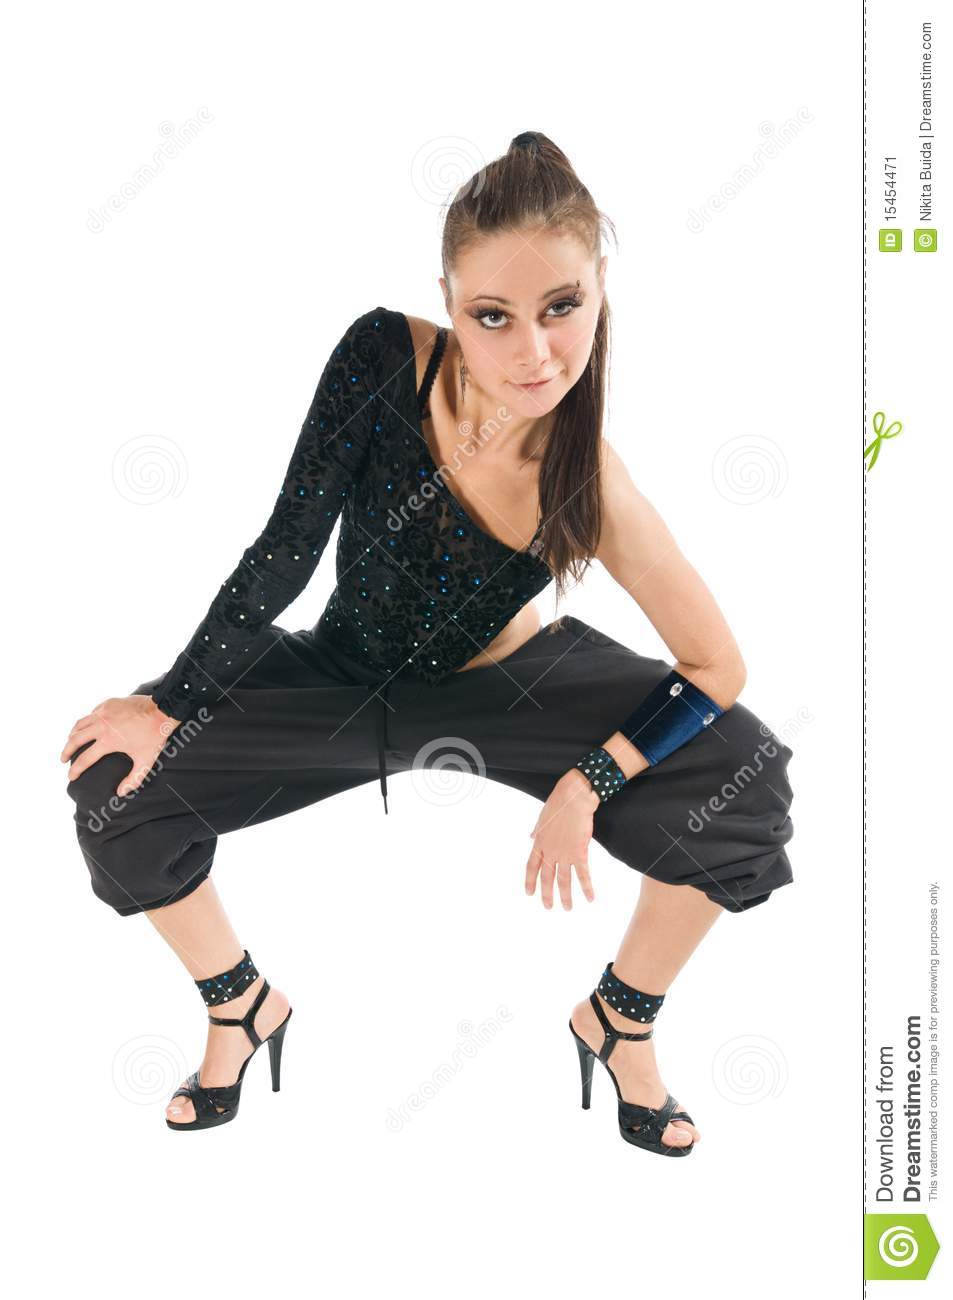 modern dancer wearing high heels stock image image 15454471. Black Bedroom Furniture Sets. Home Design Ideas